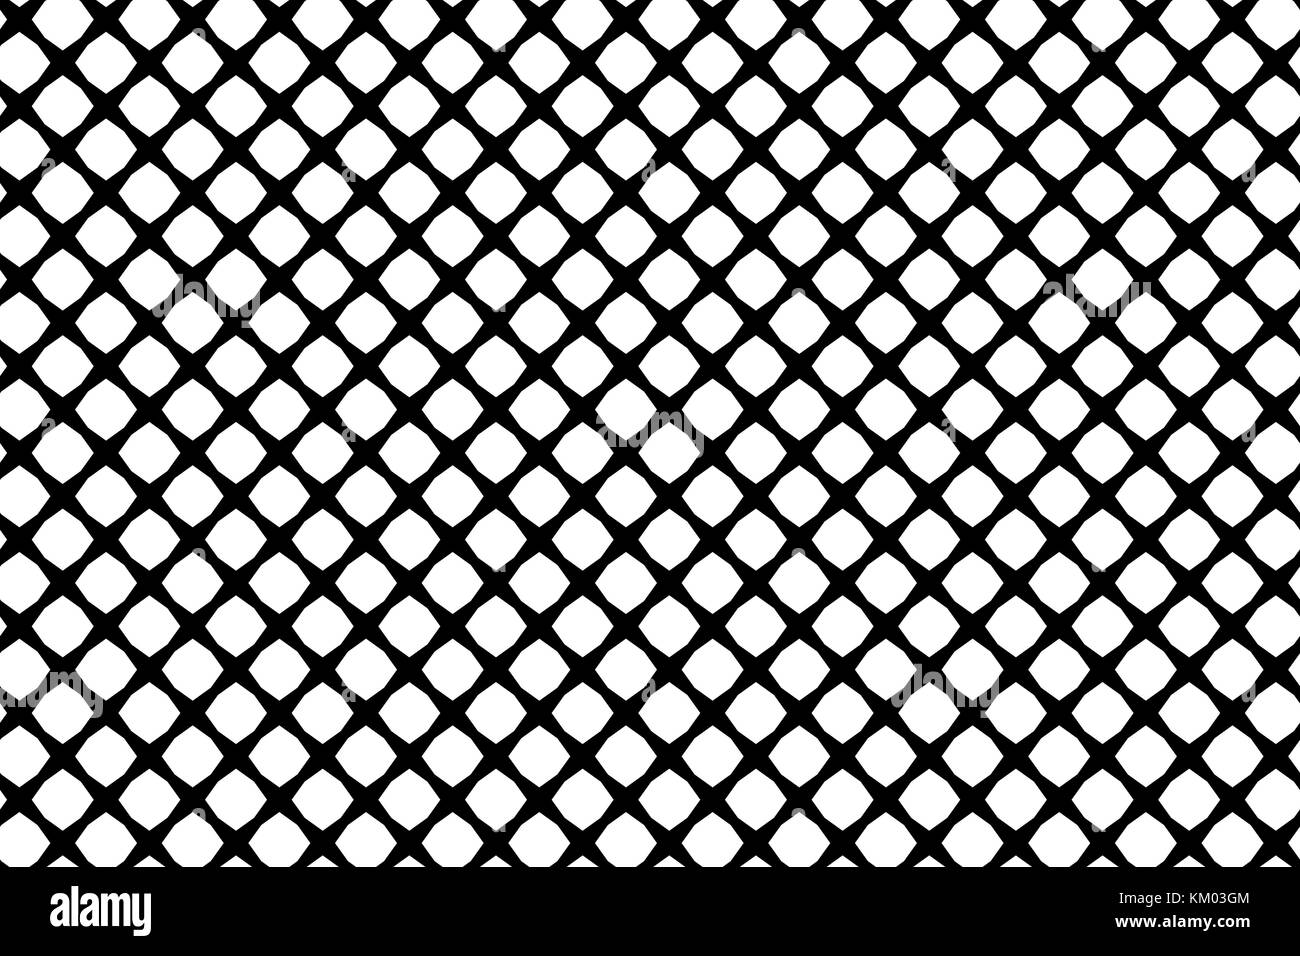 Mesh - abstract black and white pattern - vector, Abstract